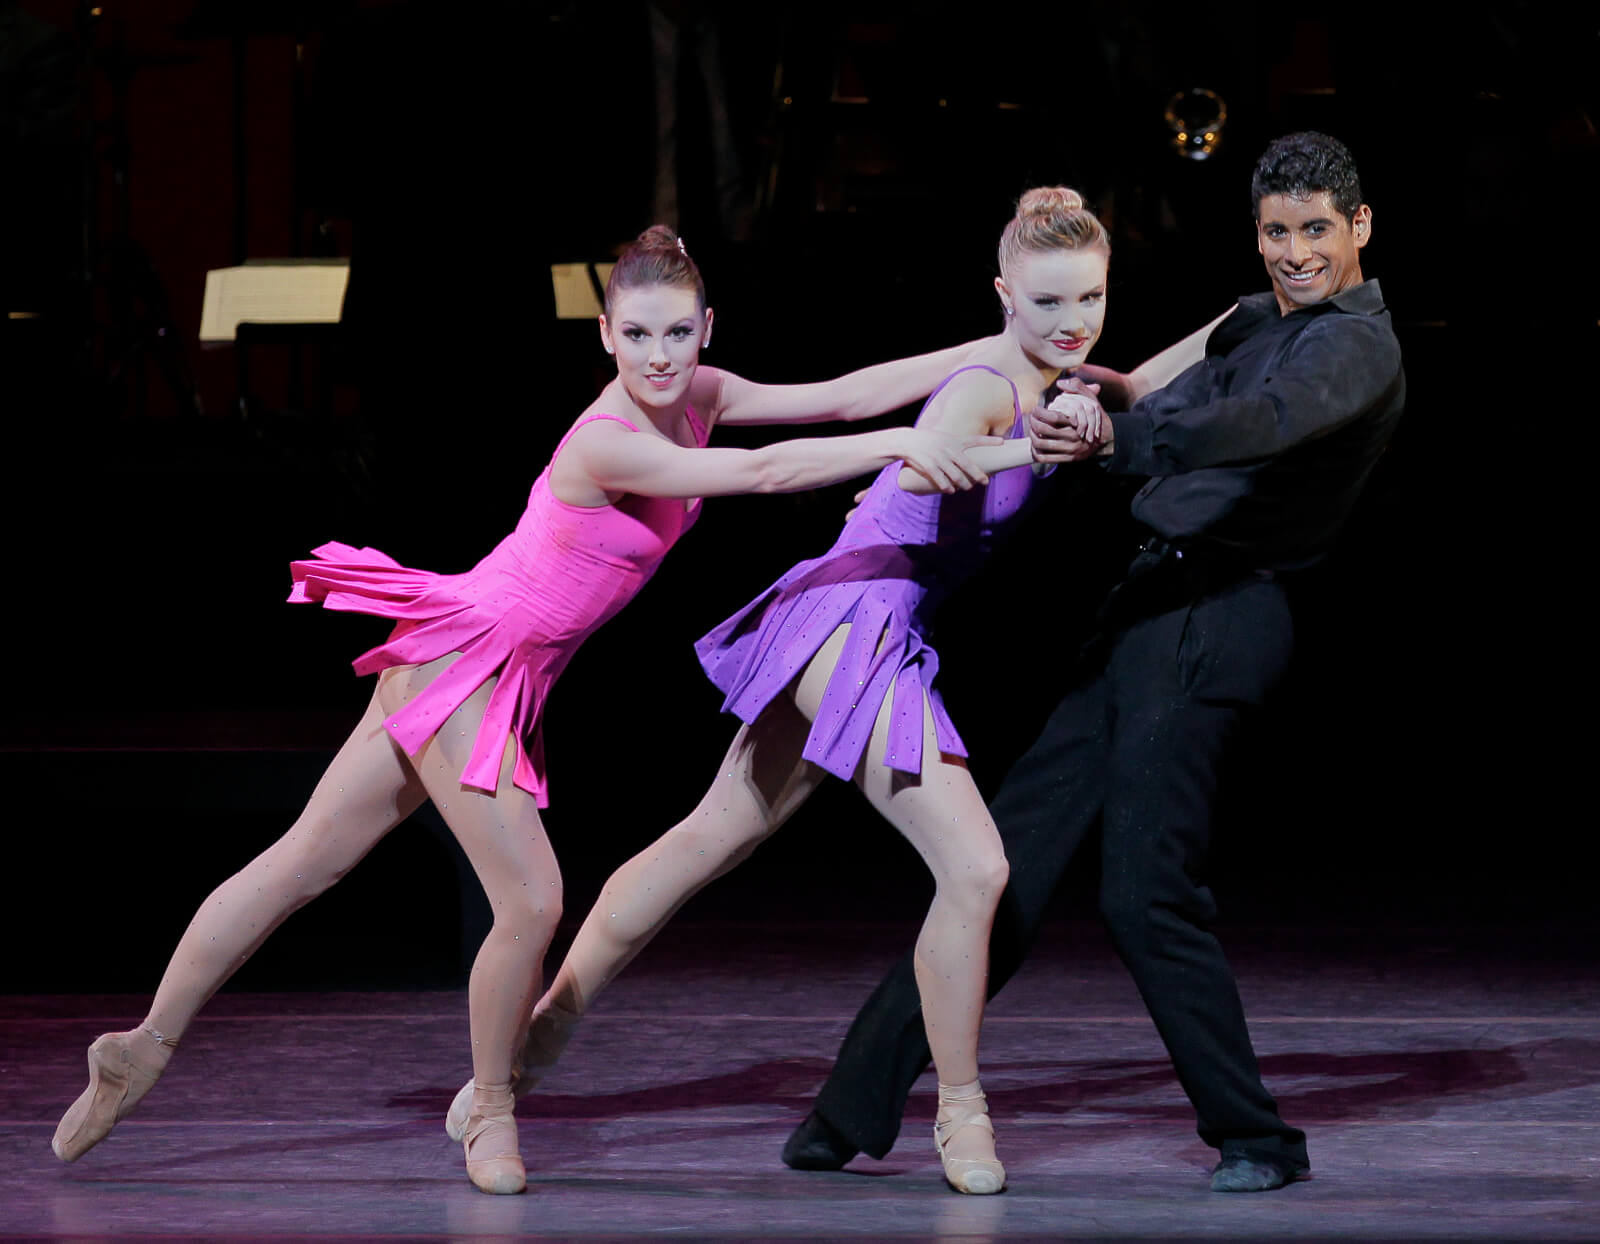 World premiere of For the Love of Duke: two women, Tiler Peck in pink and Sara Mearns in purple, dance with Amar Ramasar, dressed in all black.